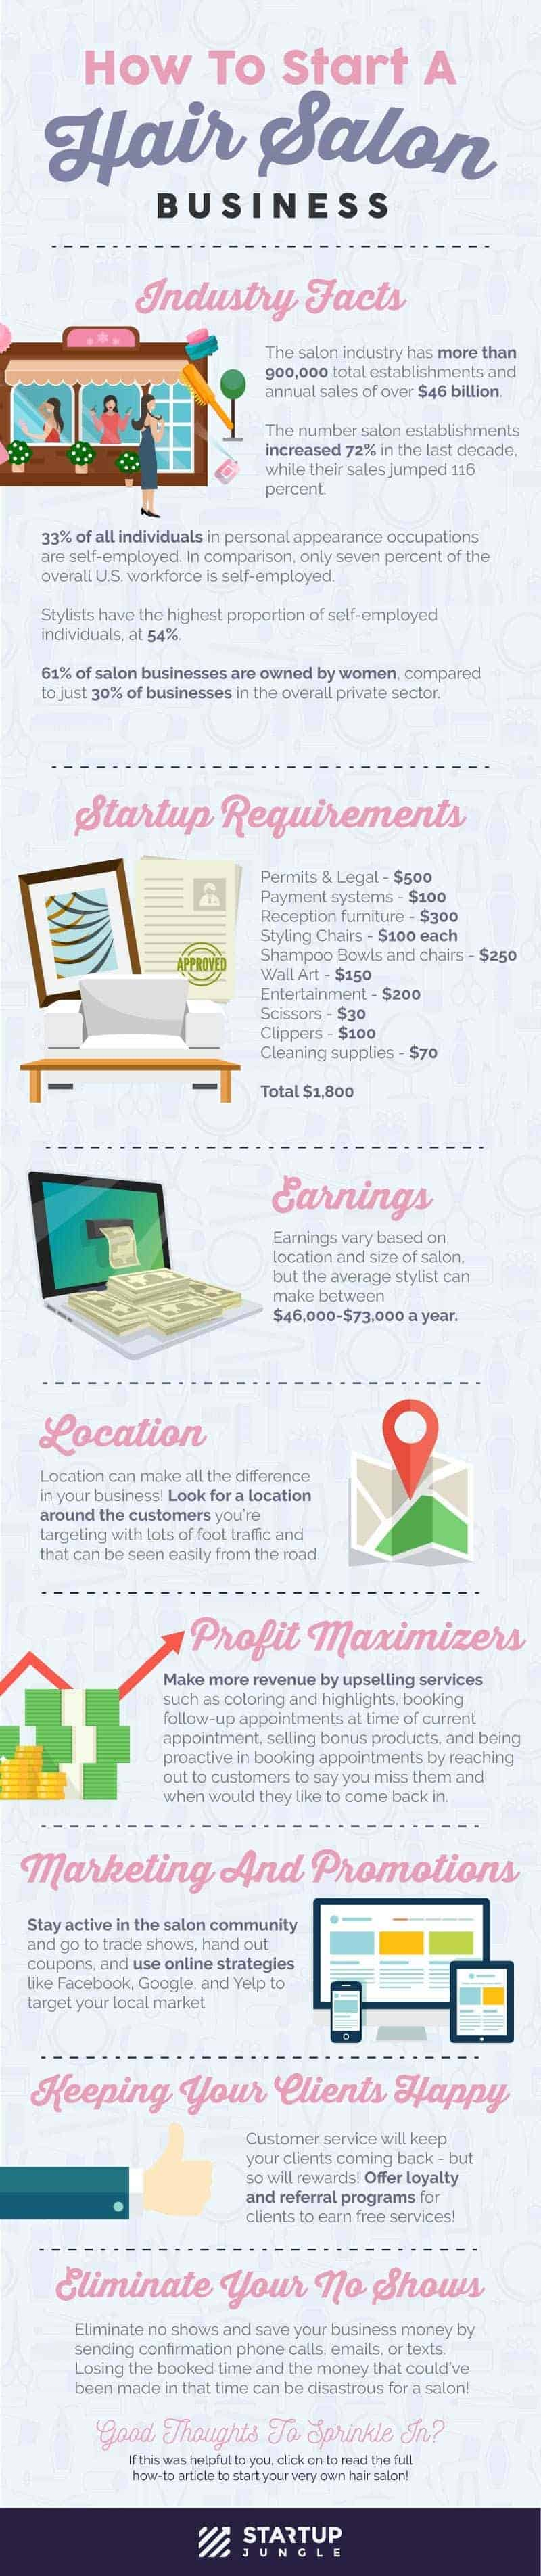 start a hair salon from home infographic